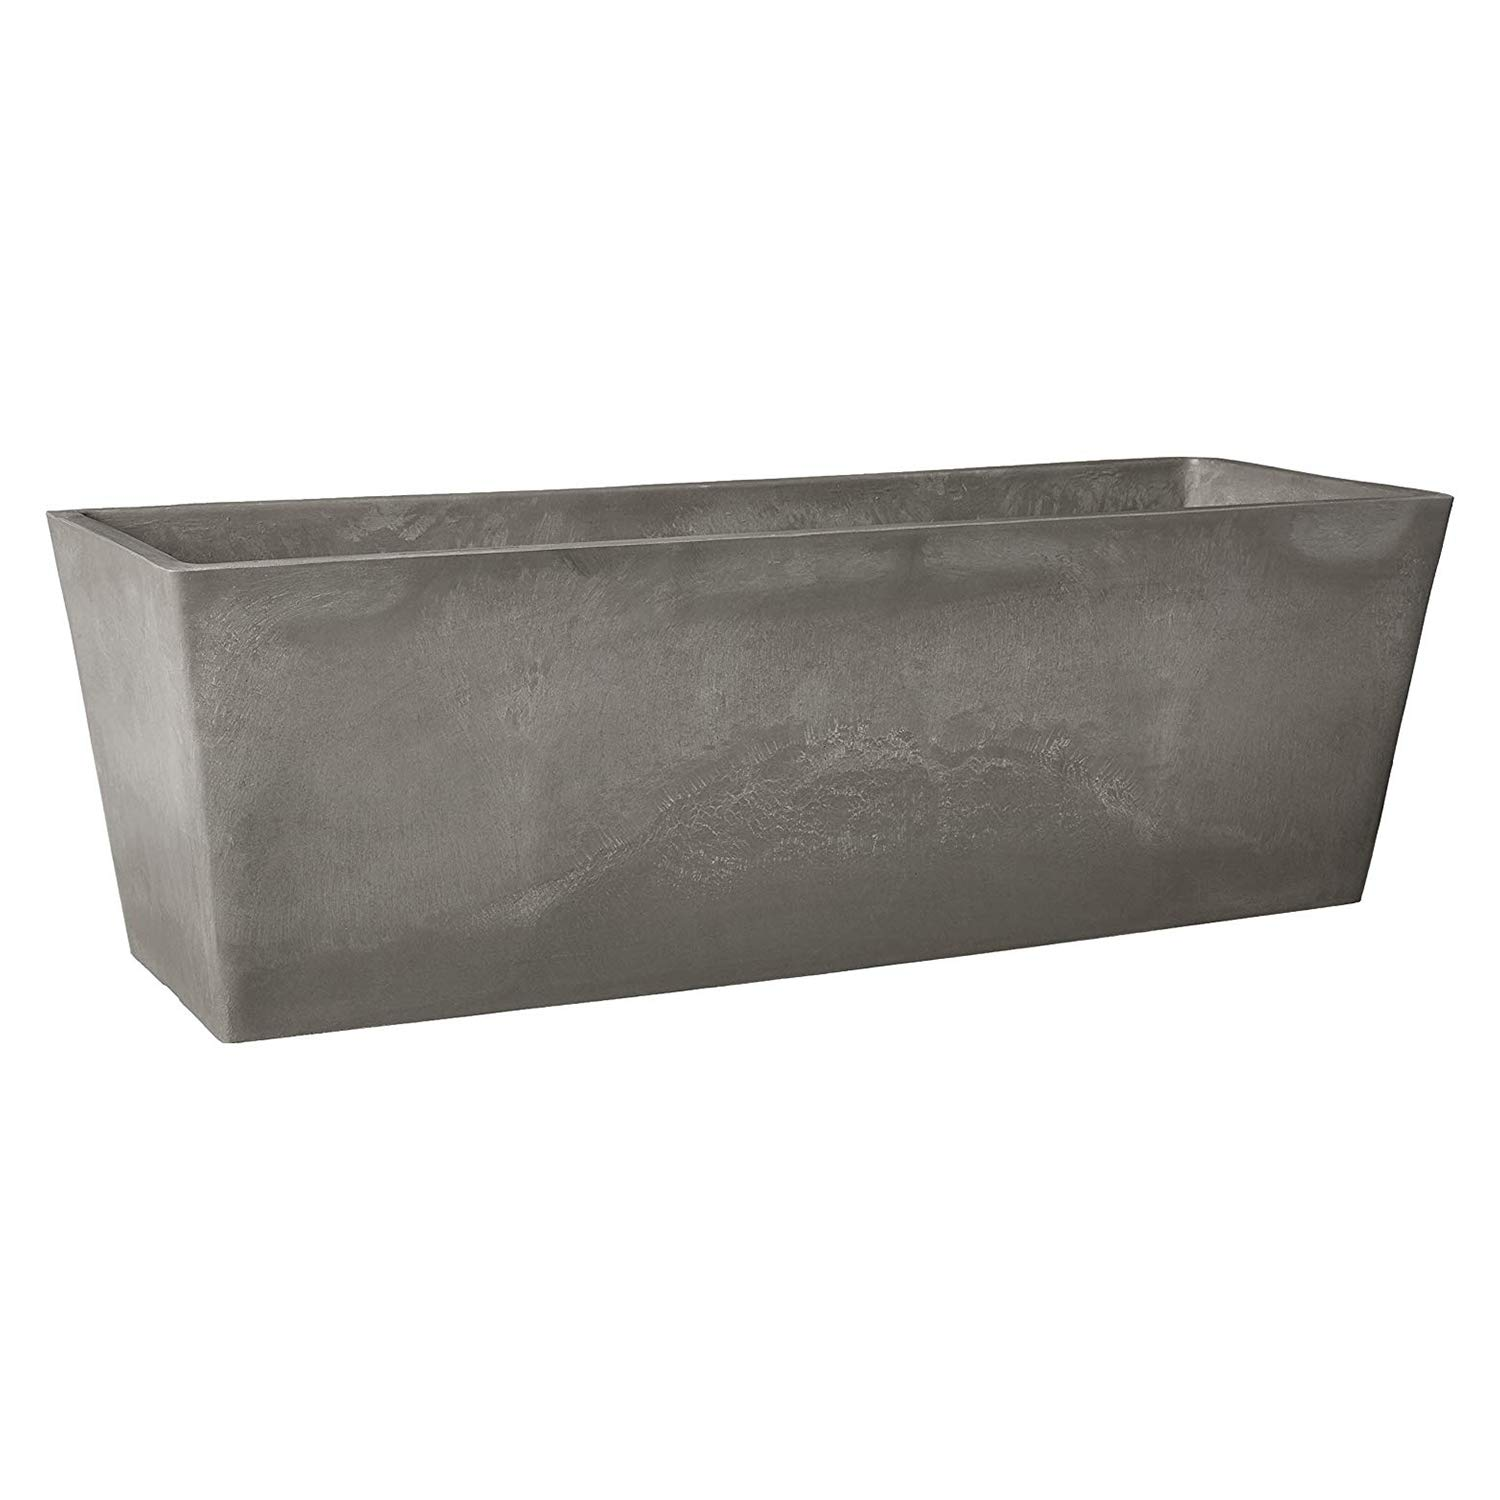 "Arcadia Garden Products PSW U45CT Simplicity Window Box, 17.5"" x 7"" x 6"", Cement Color"